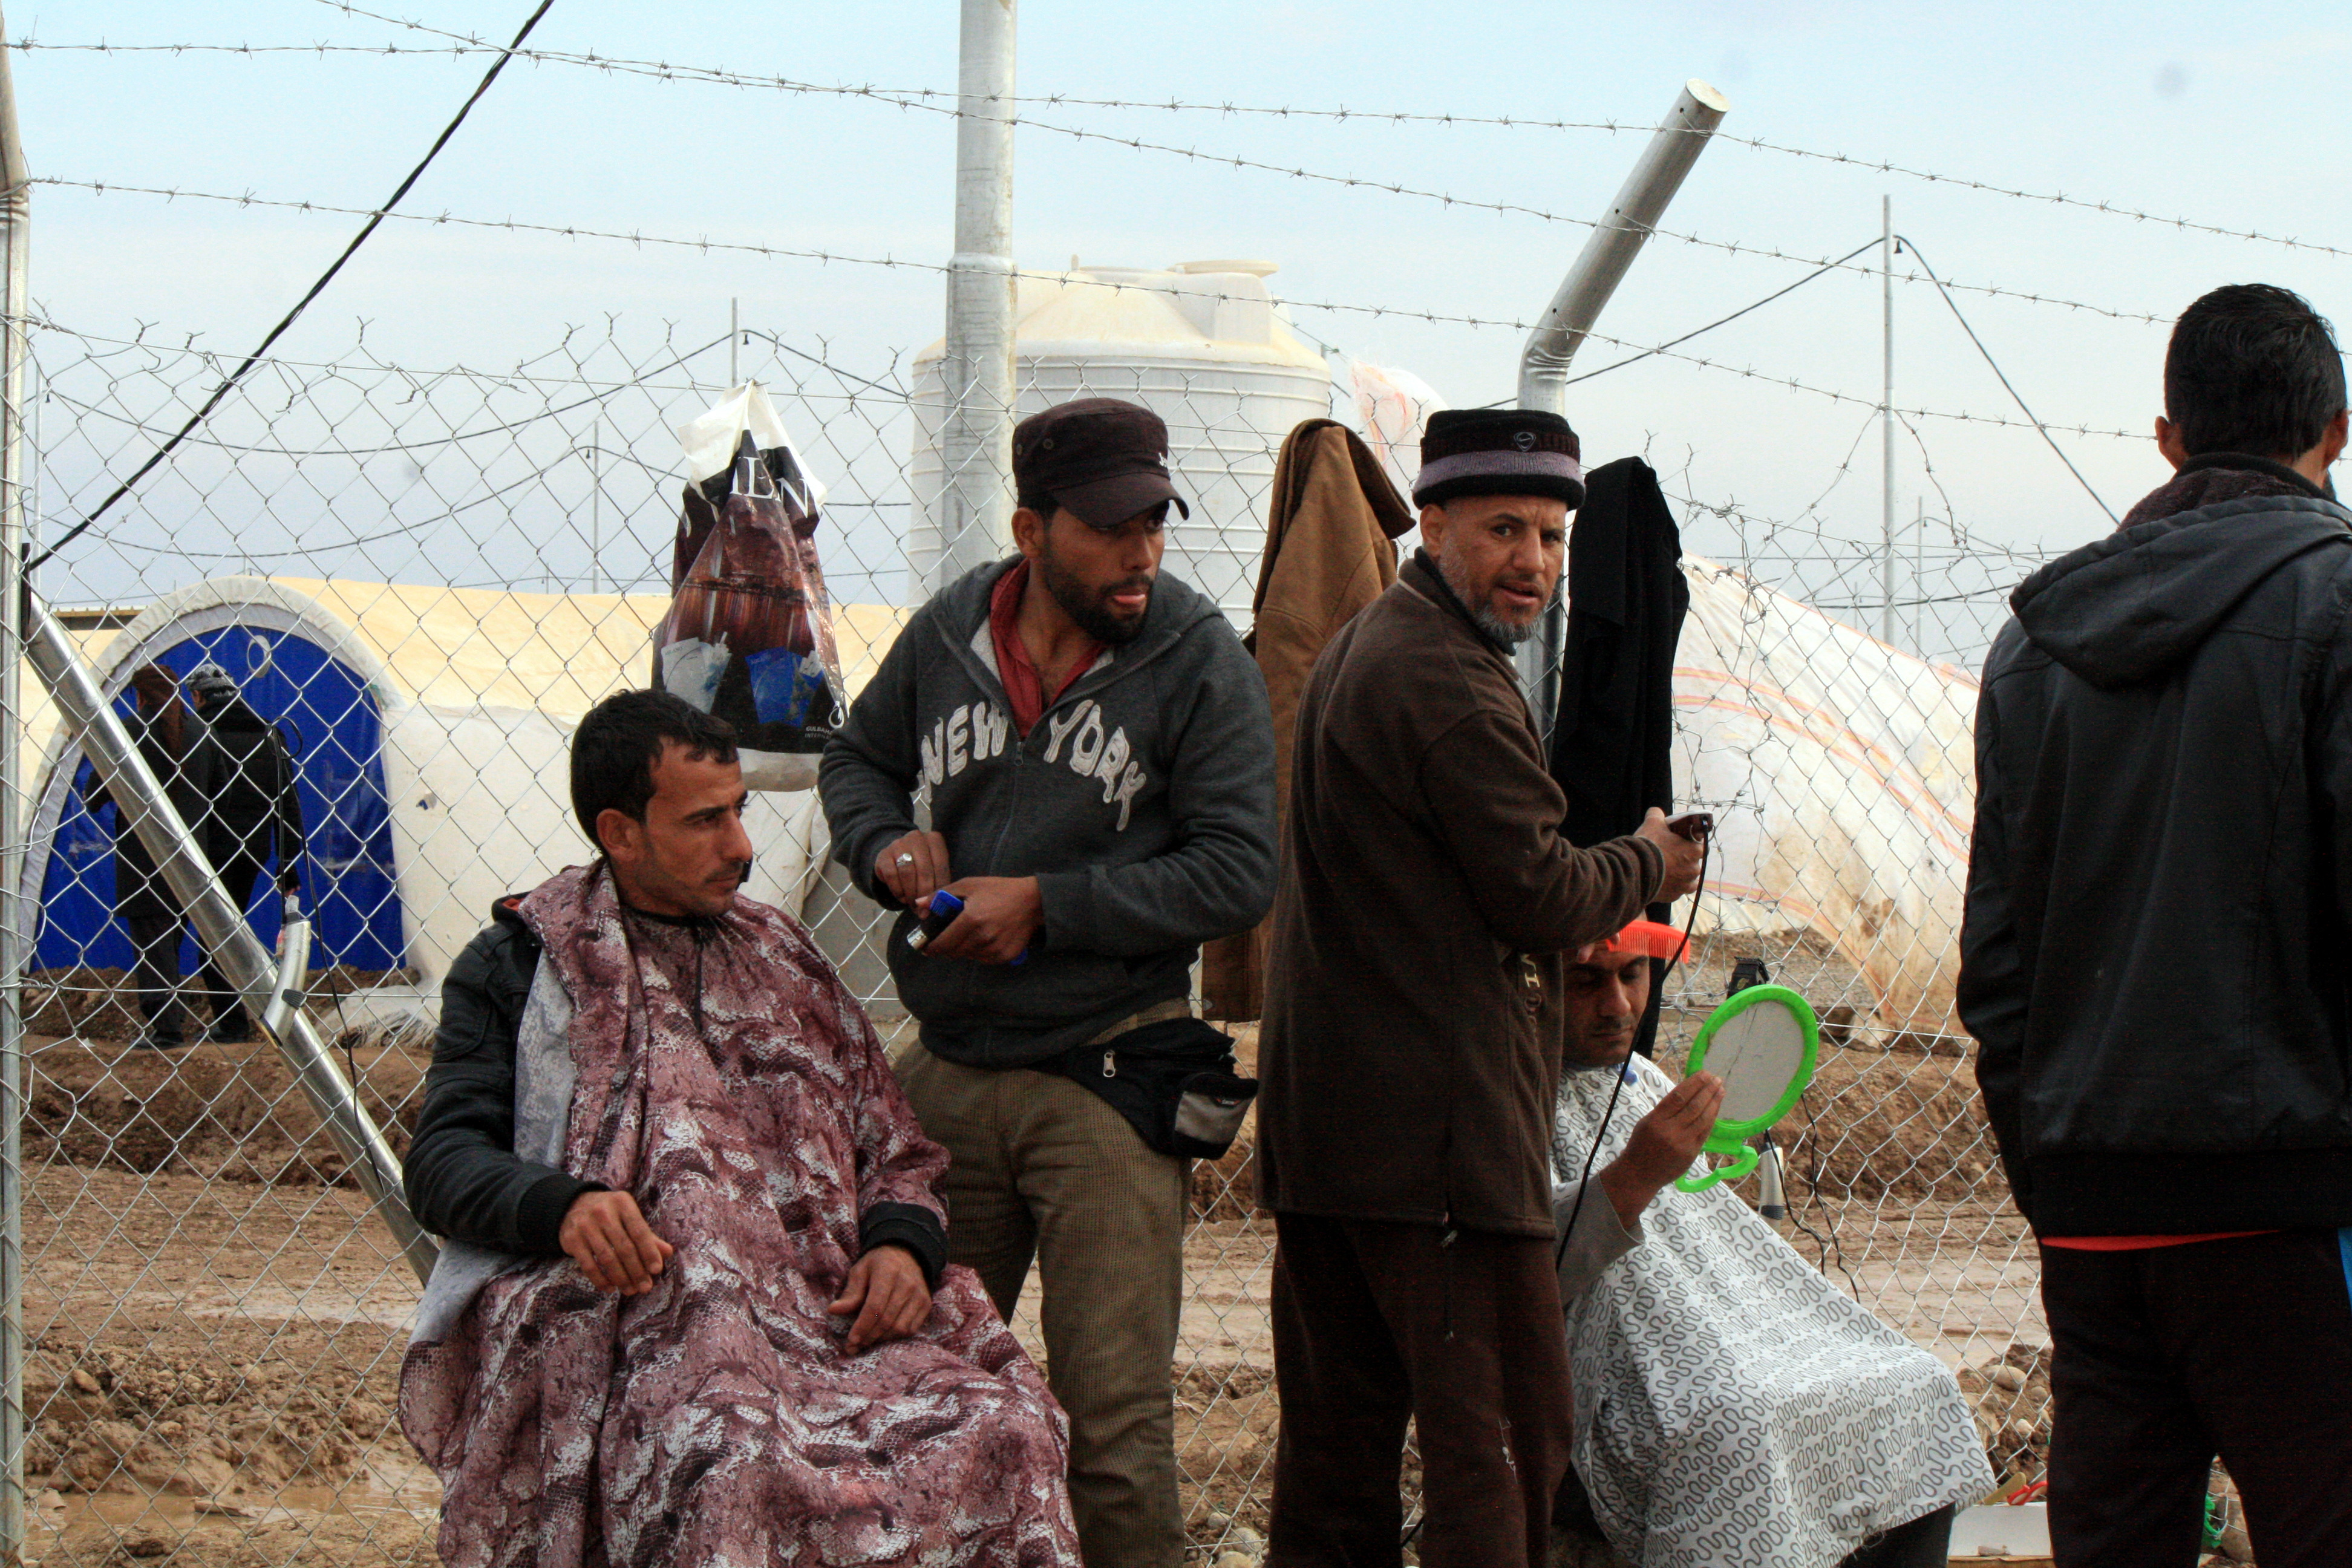 Makeshift barbershops dot the many camps in the region surrounding Mosul. Refugees say most people shave their IS-style beards and change their hairstyles as soon as possible after they escape, at the Khazir camp in Kurdish Iraq, Dec. 13, 2016. (H. M...